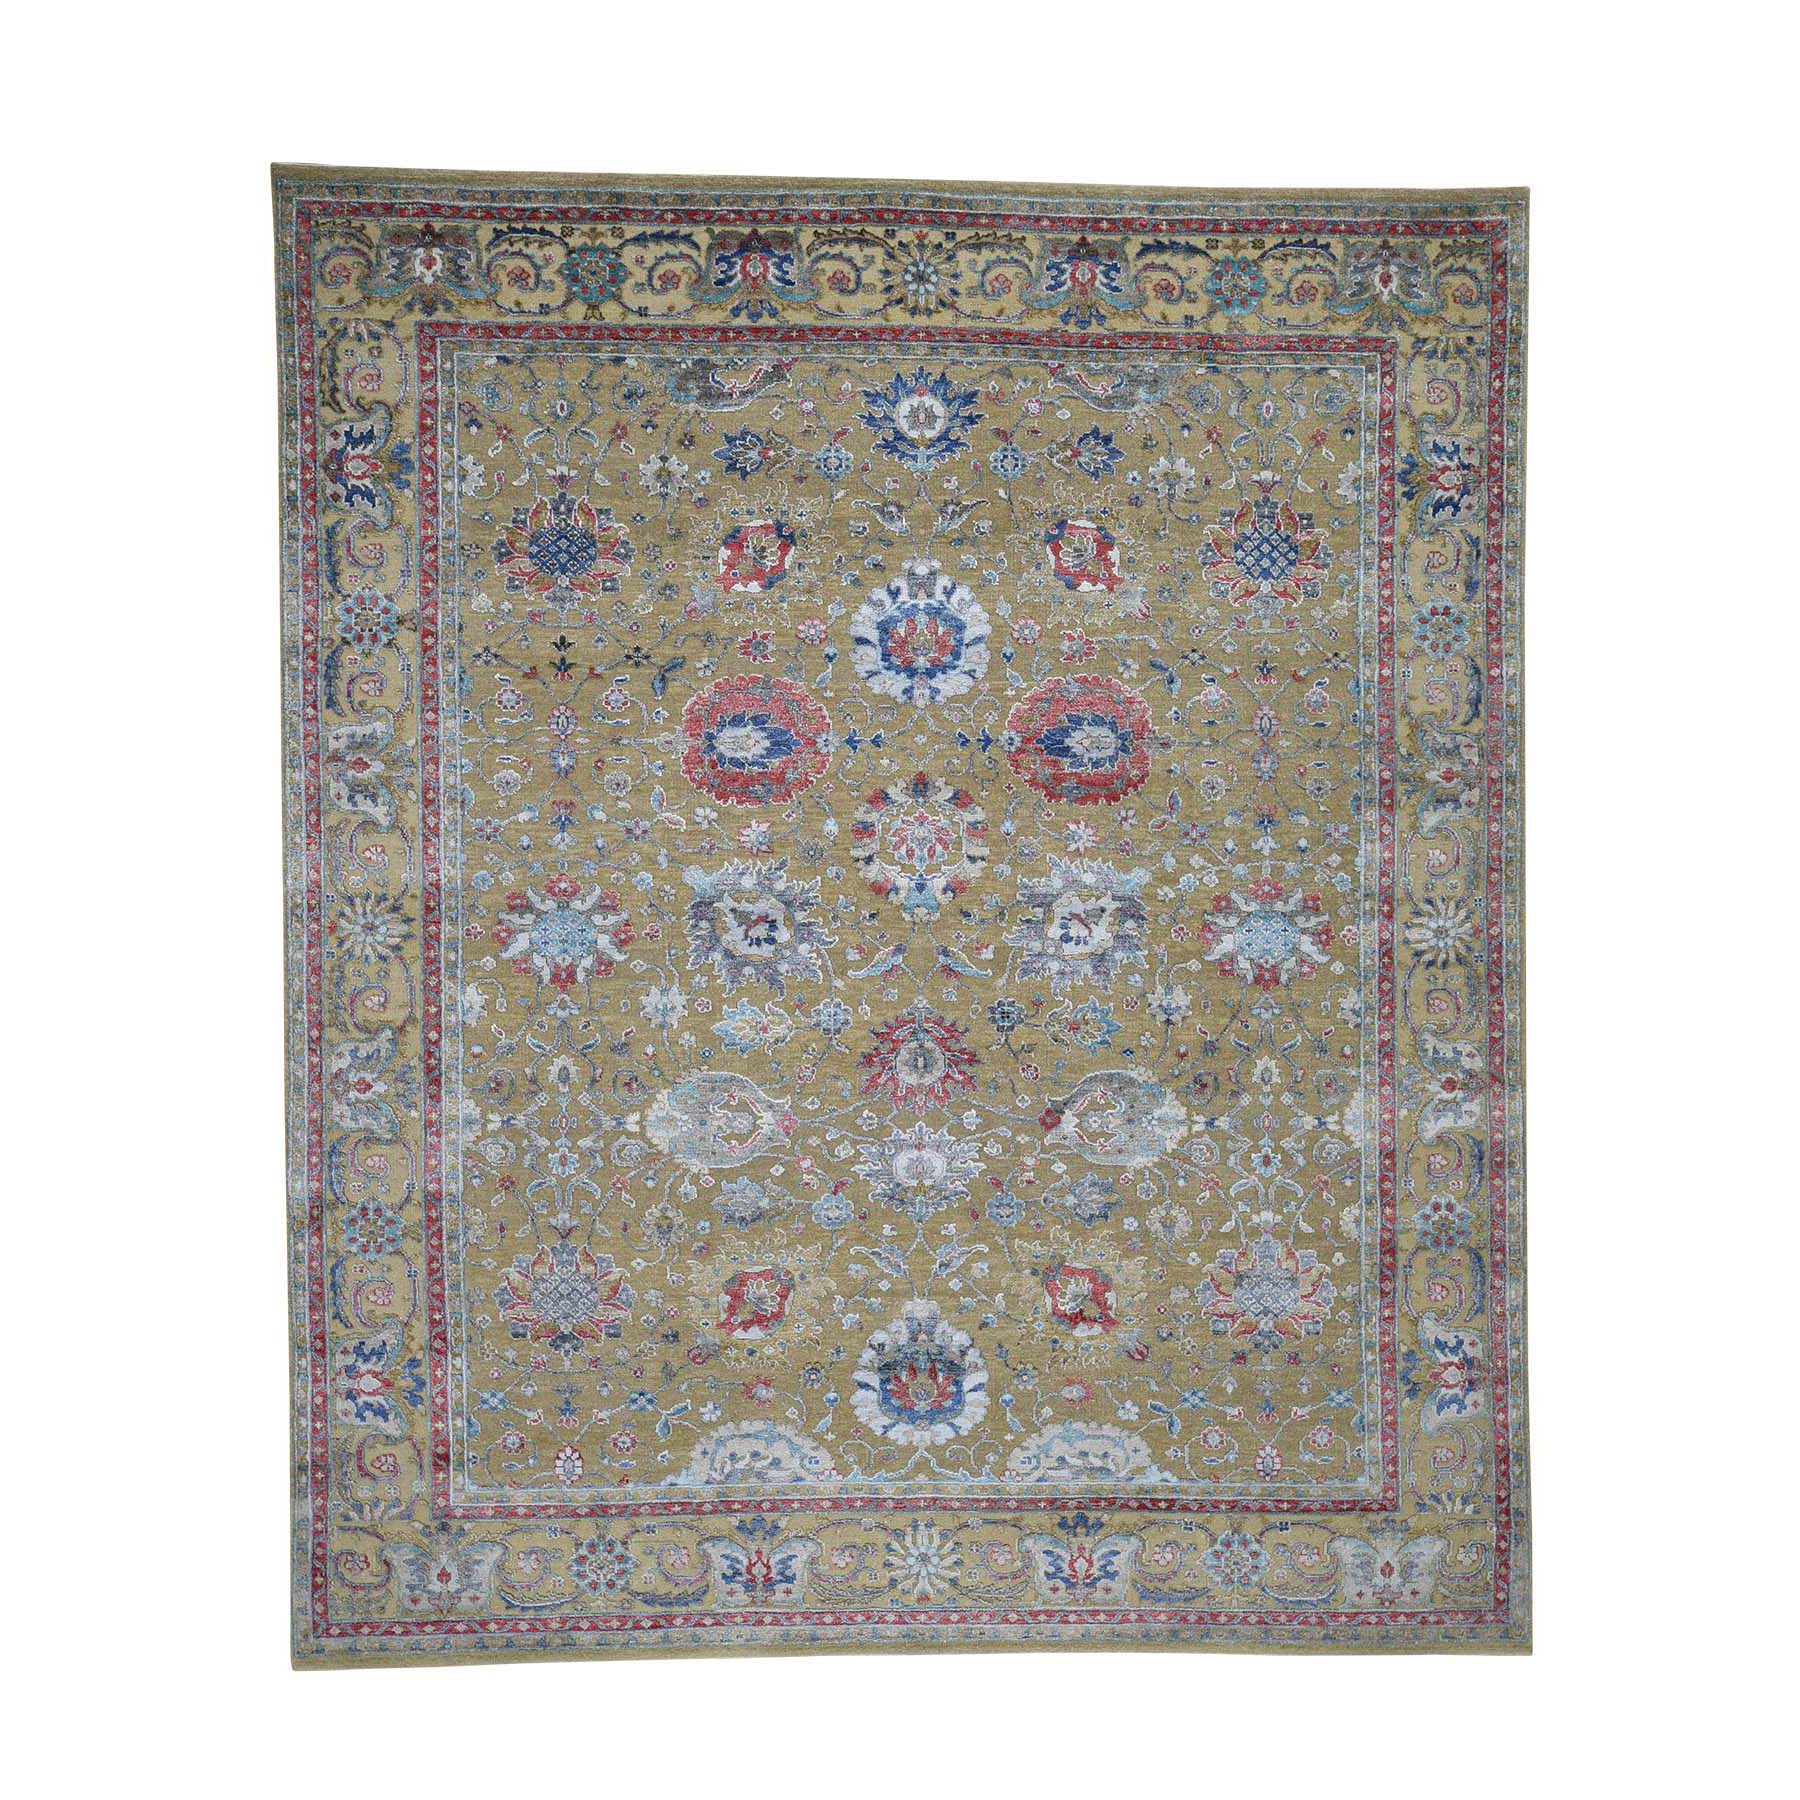 Wool and Real Silk Collection Hand Knotted Teal Rug No: 0183684